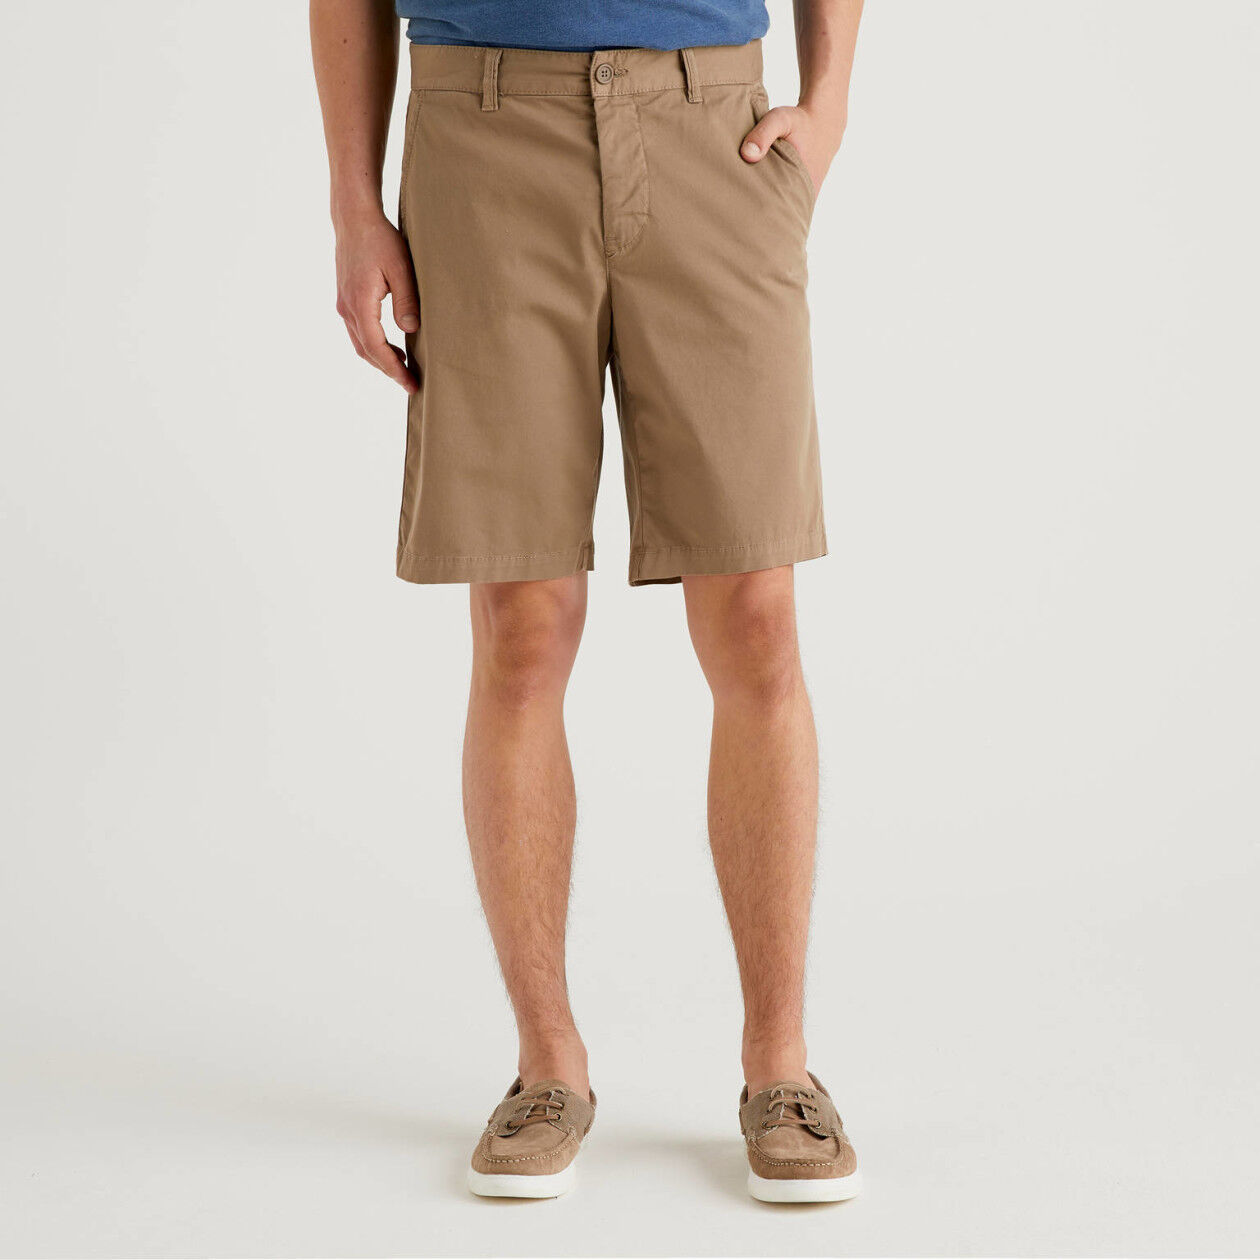 Bermuda chino stretch